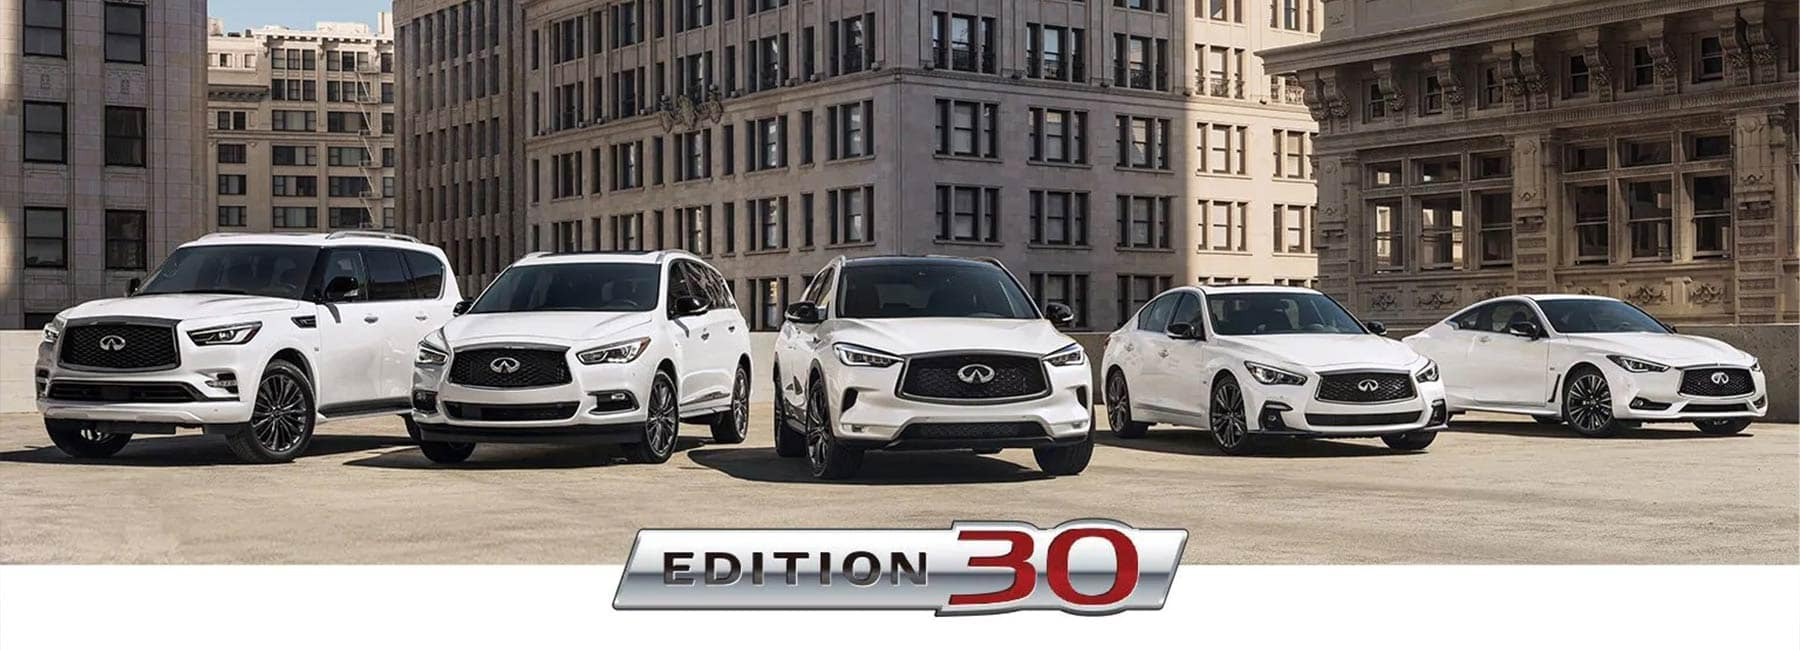 INFINITI EDITION 30 Model Lineup & Package Overview